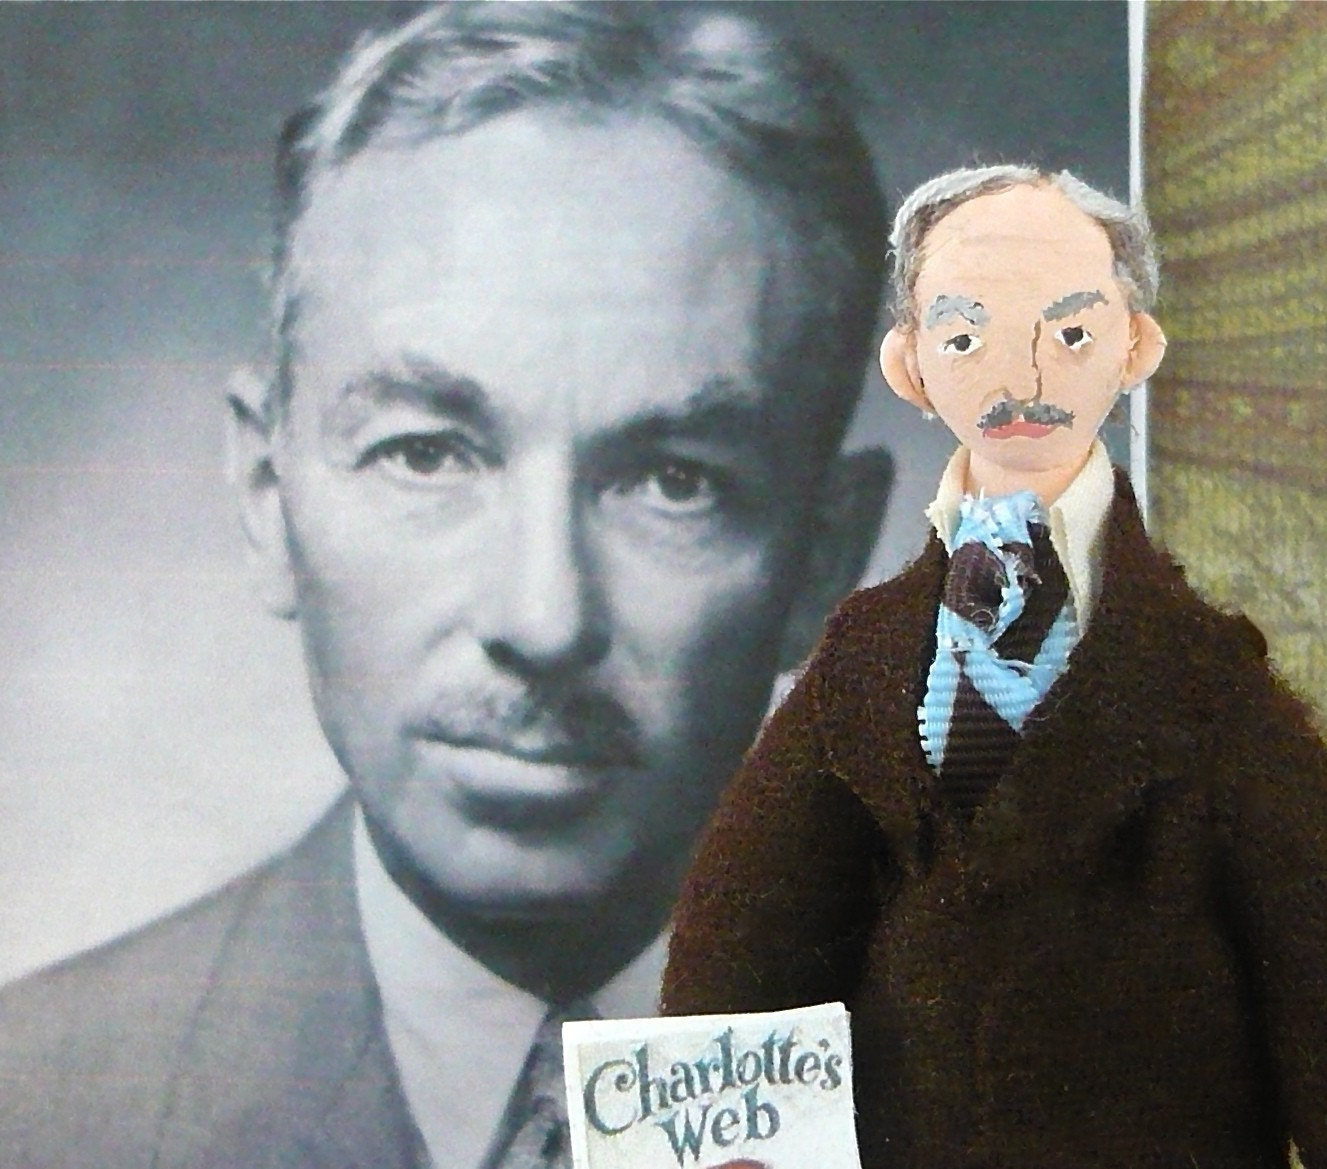 e b white doll miniature author of charlotte s web 128270zoom